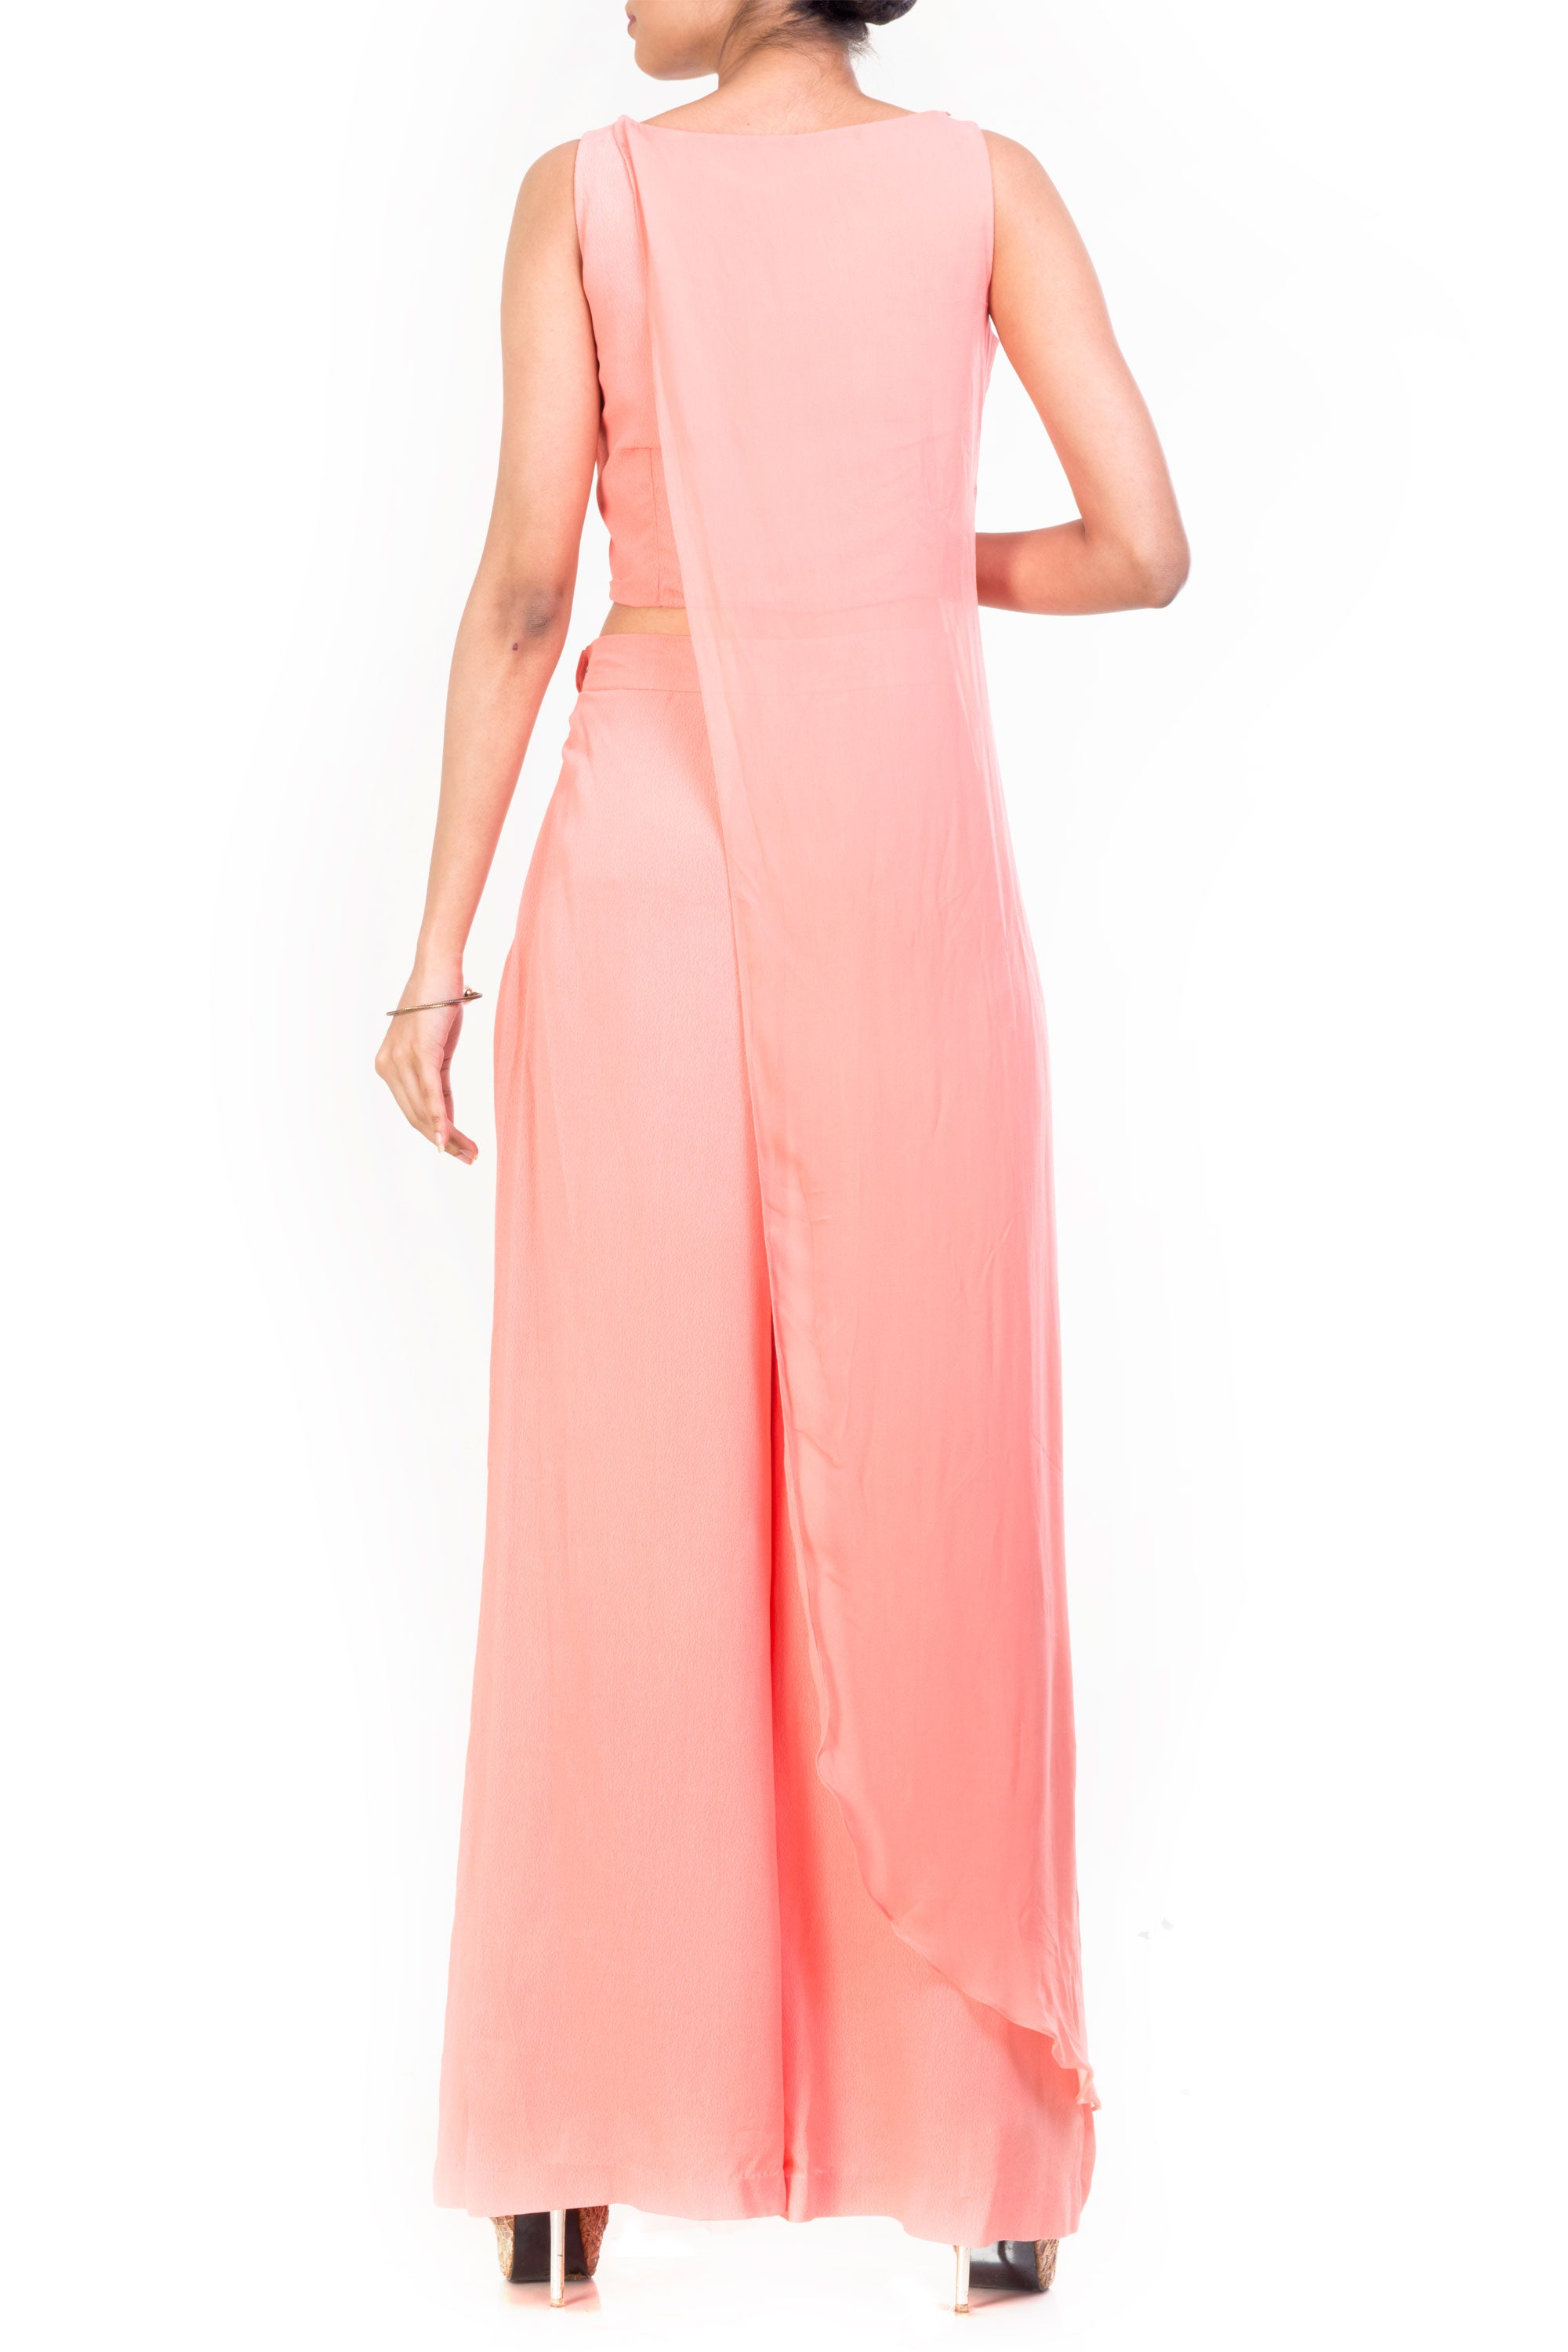 Cotton Candy Long Layered Crop Top Palazzo Set Back